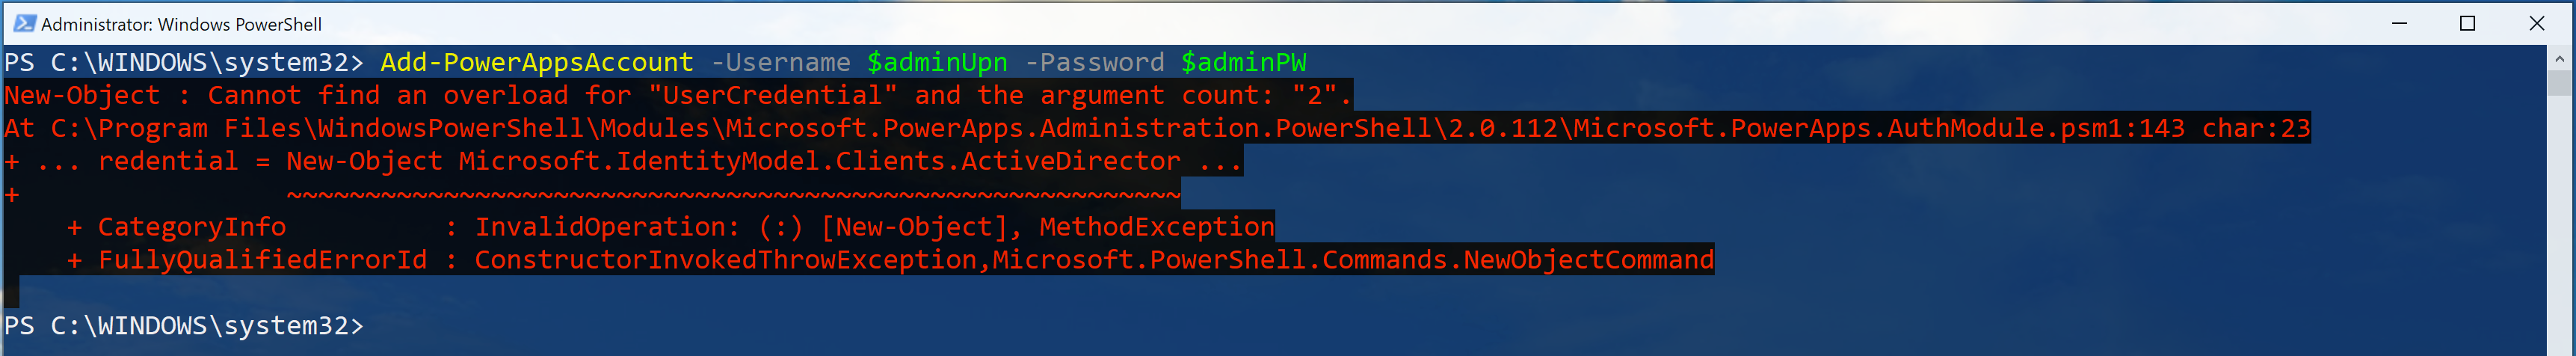 Unable to Login to Power Apps Environment